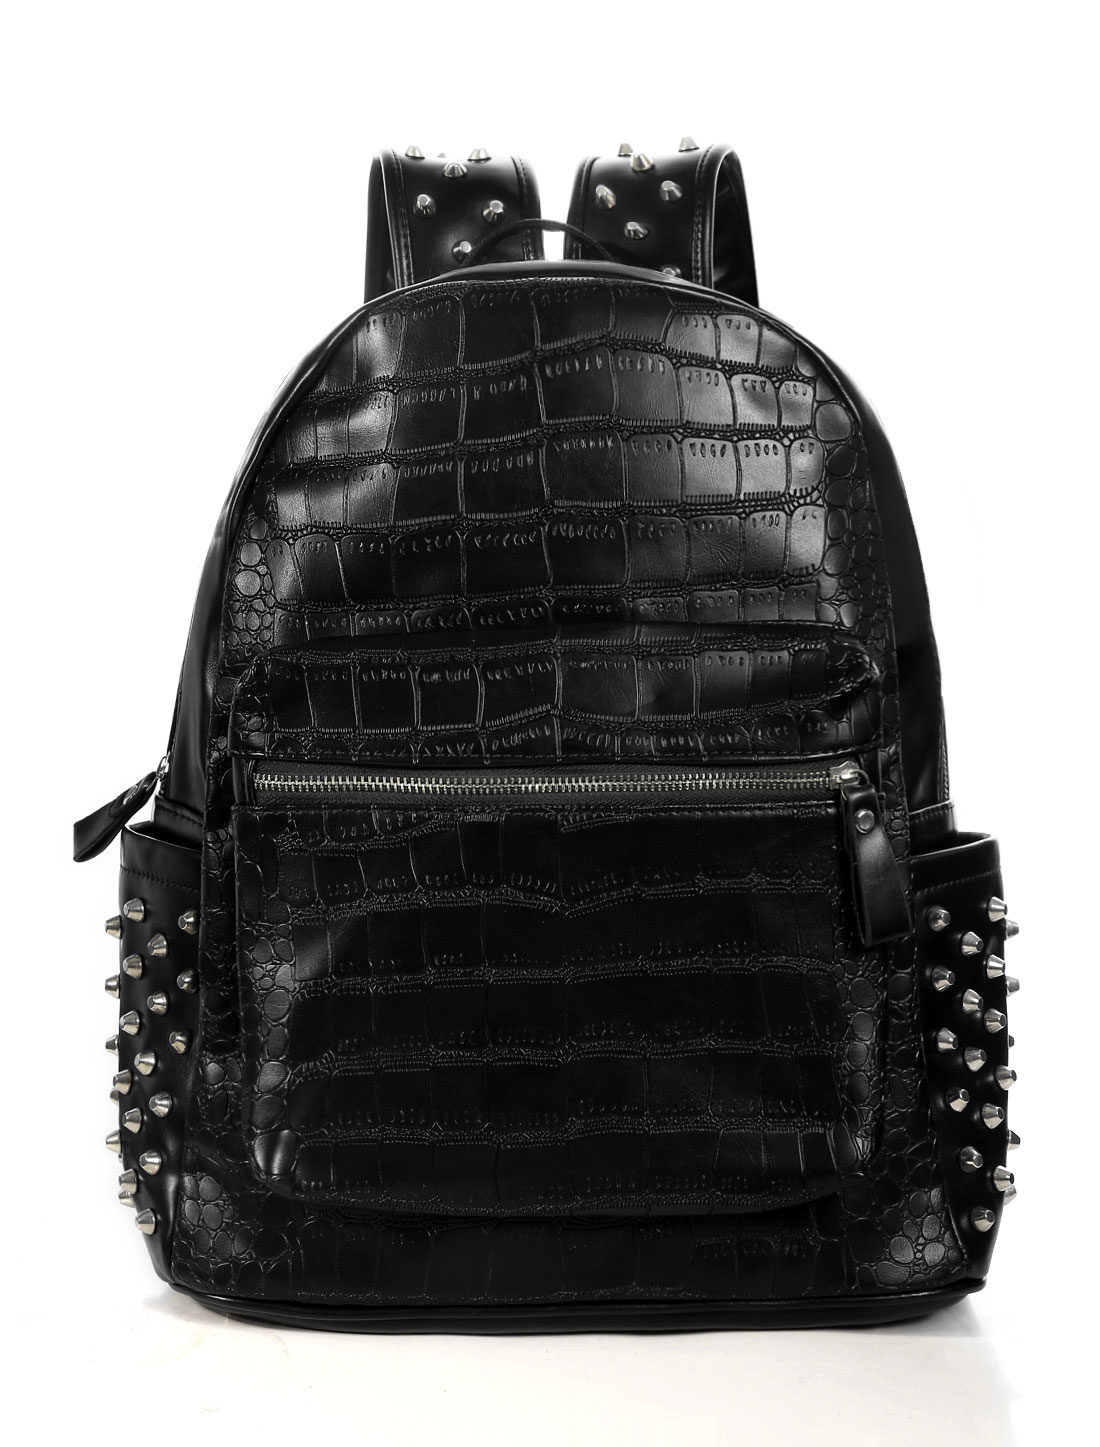 Unisex Zippered Closure Adjustable Straps Studded Backpacks Black